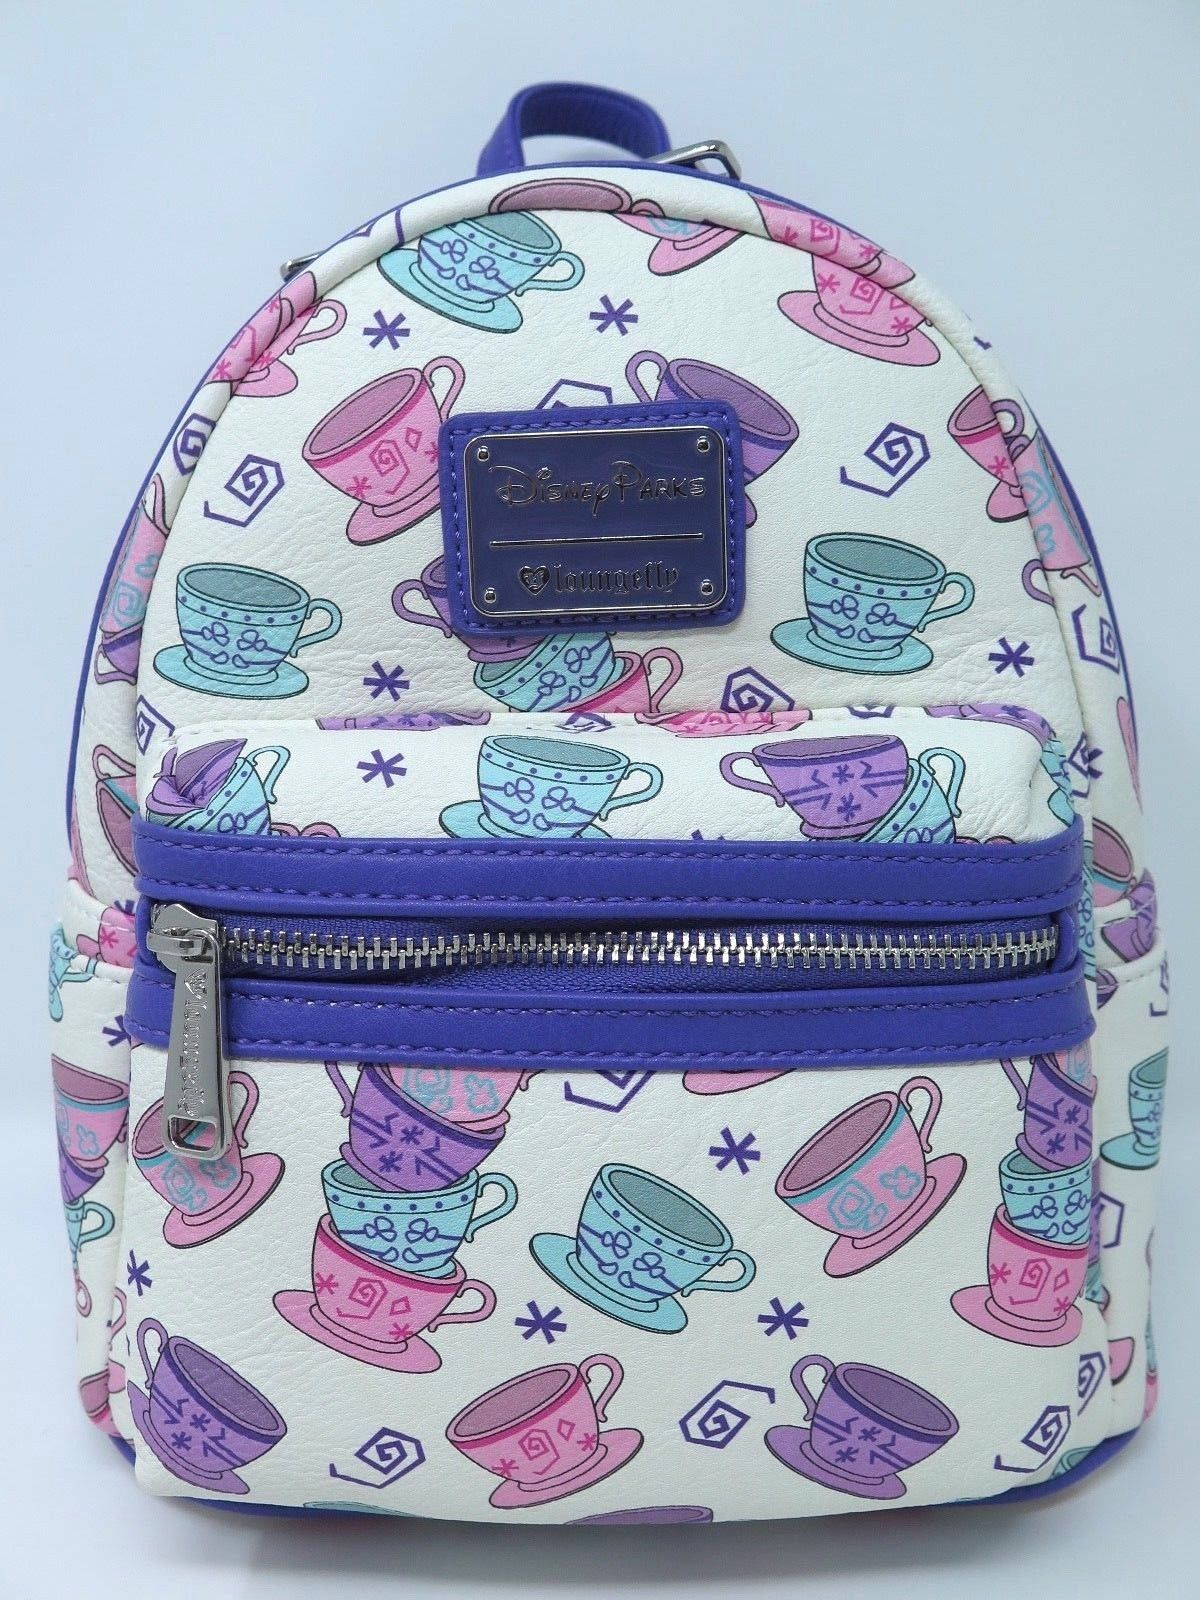 6e5b36ab969 57. 57. Previous. Disney Parks Loungefly Mini Backpack Tea Cups Alice in Wonderland  Purse Bag